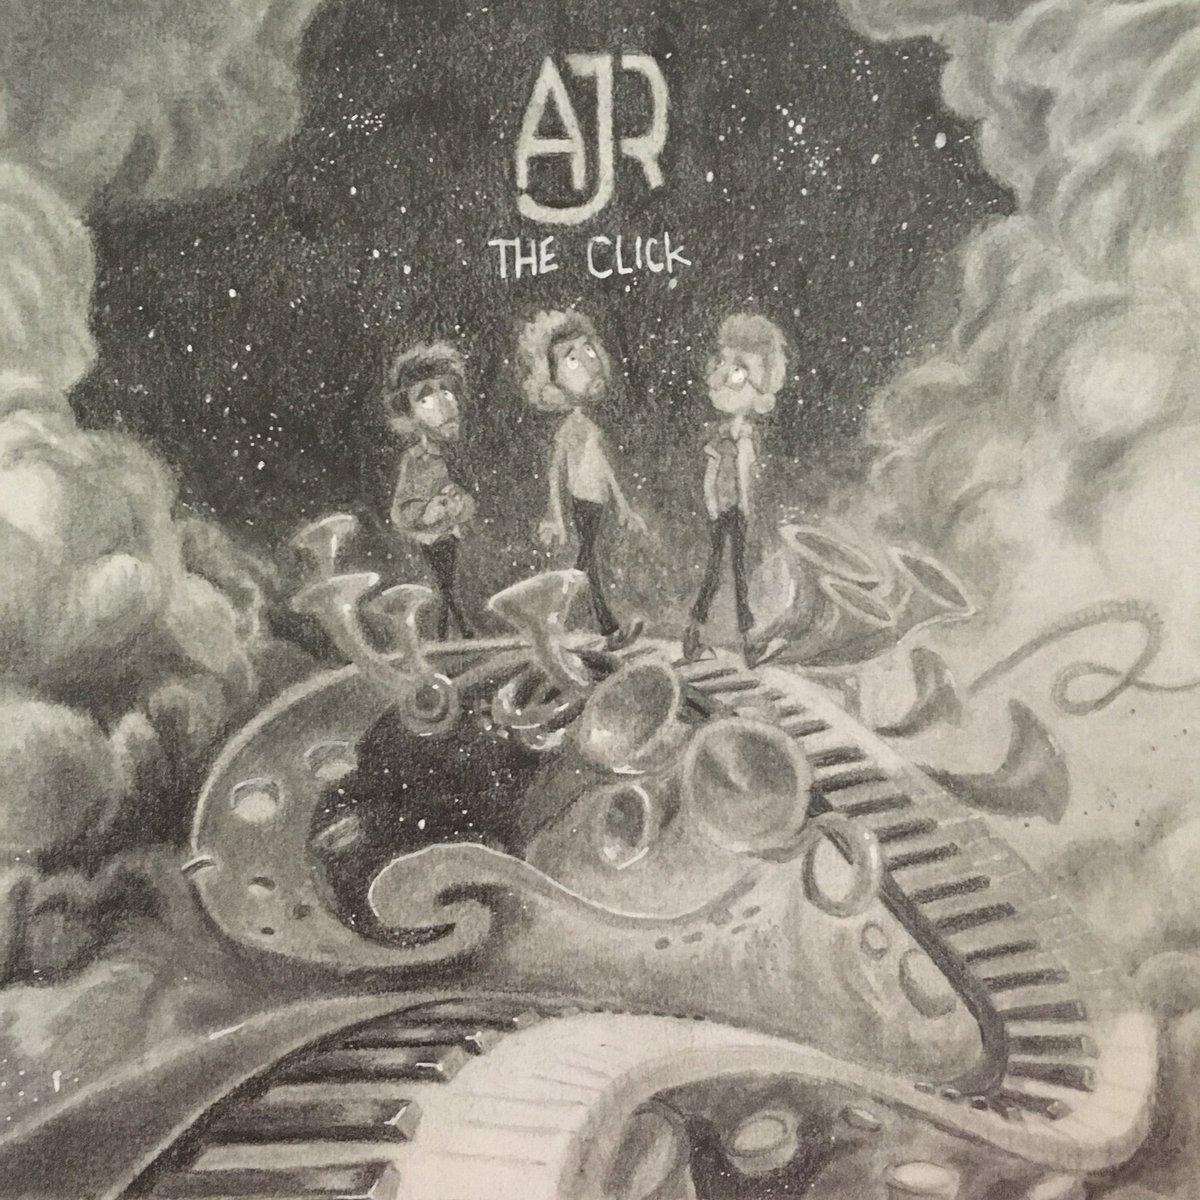 100 Bad Days AJR Wallpapers - Wallpaper Cave